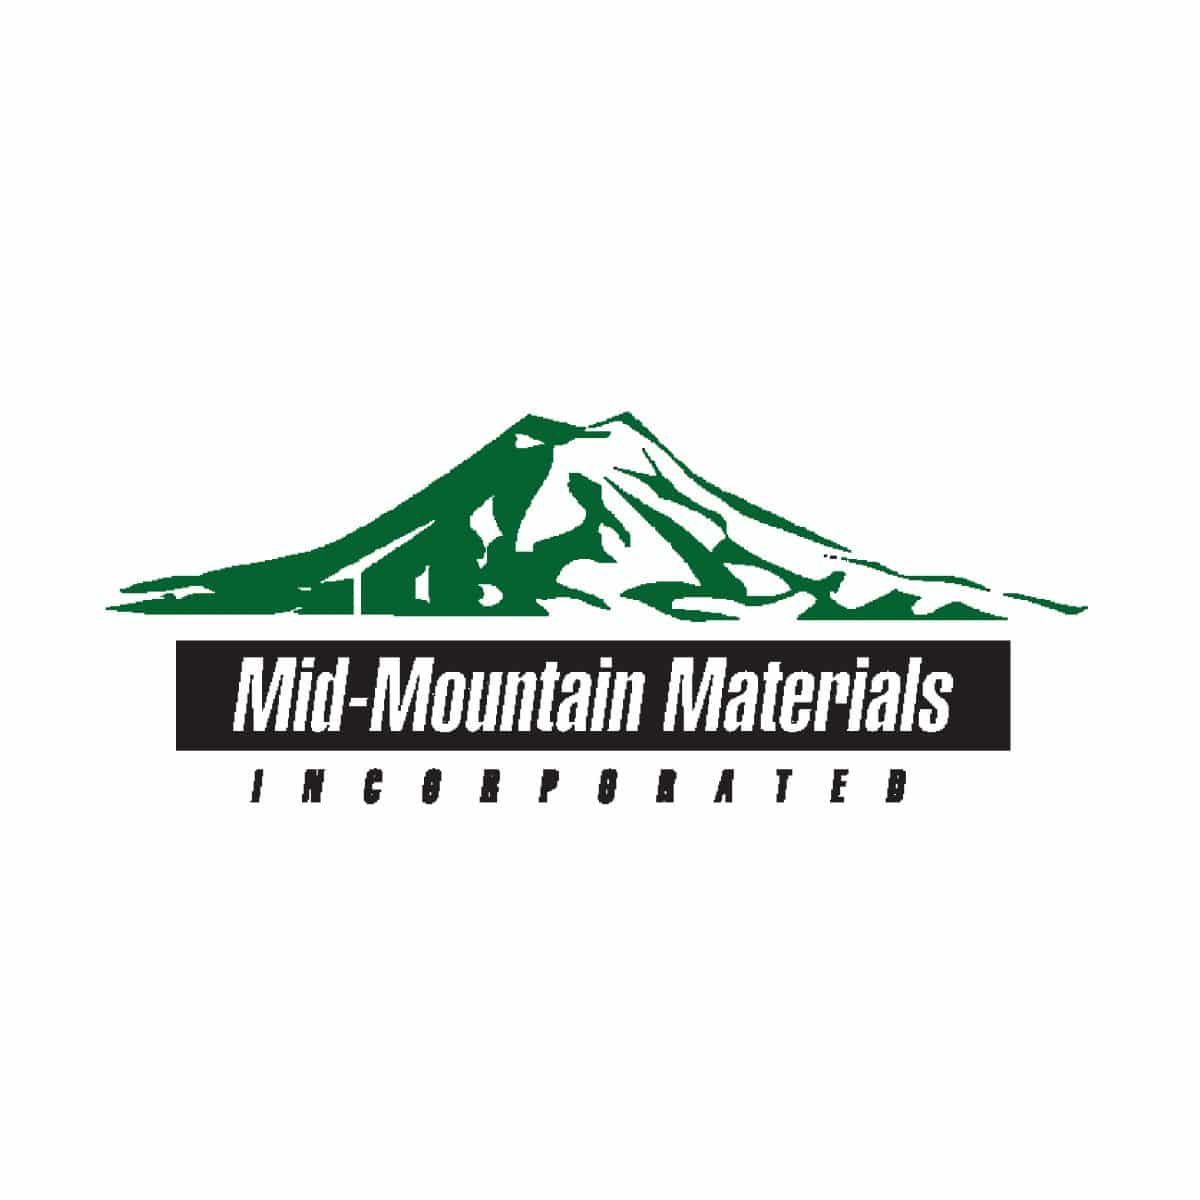 Mid-Mountain Materials